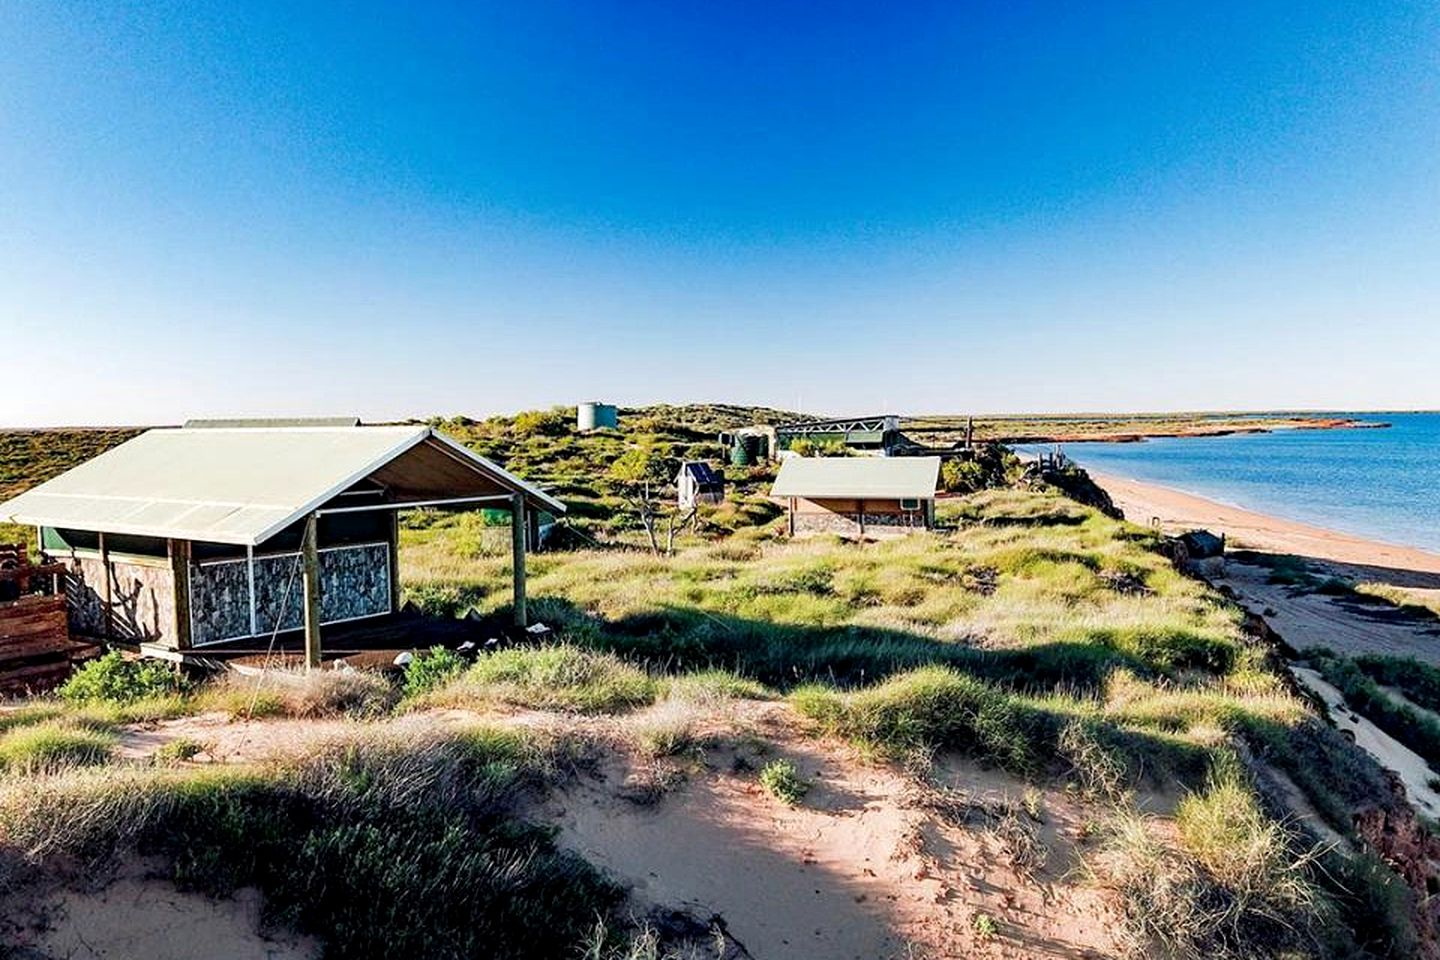 These cabins in Exmouth are the ideal choice for romantic getaways. Western Australia holiday homes have never been so secluded!